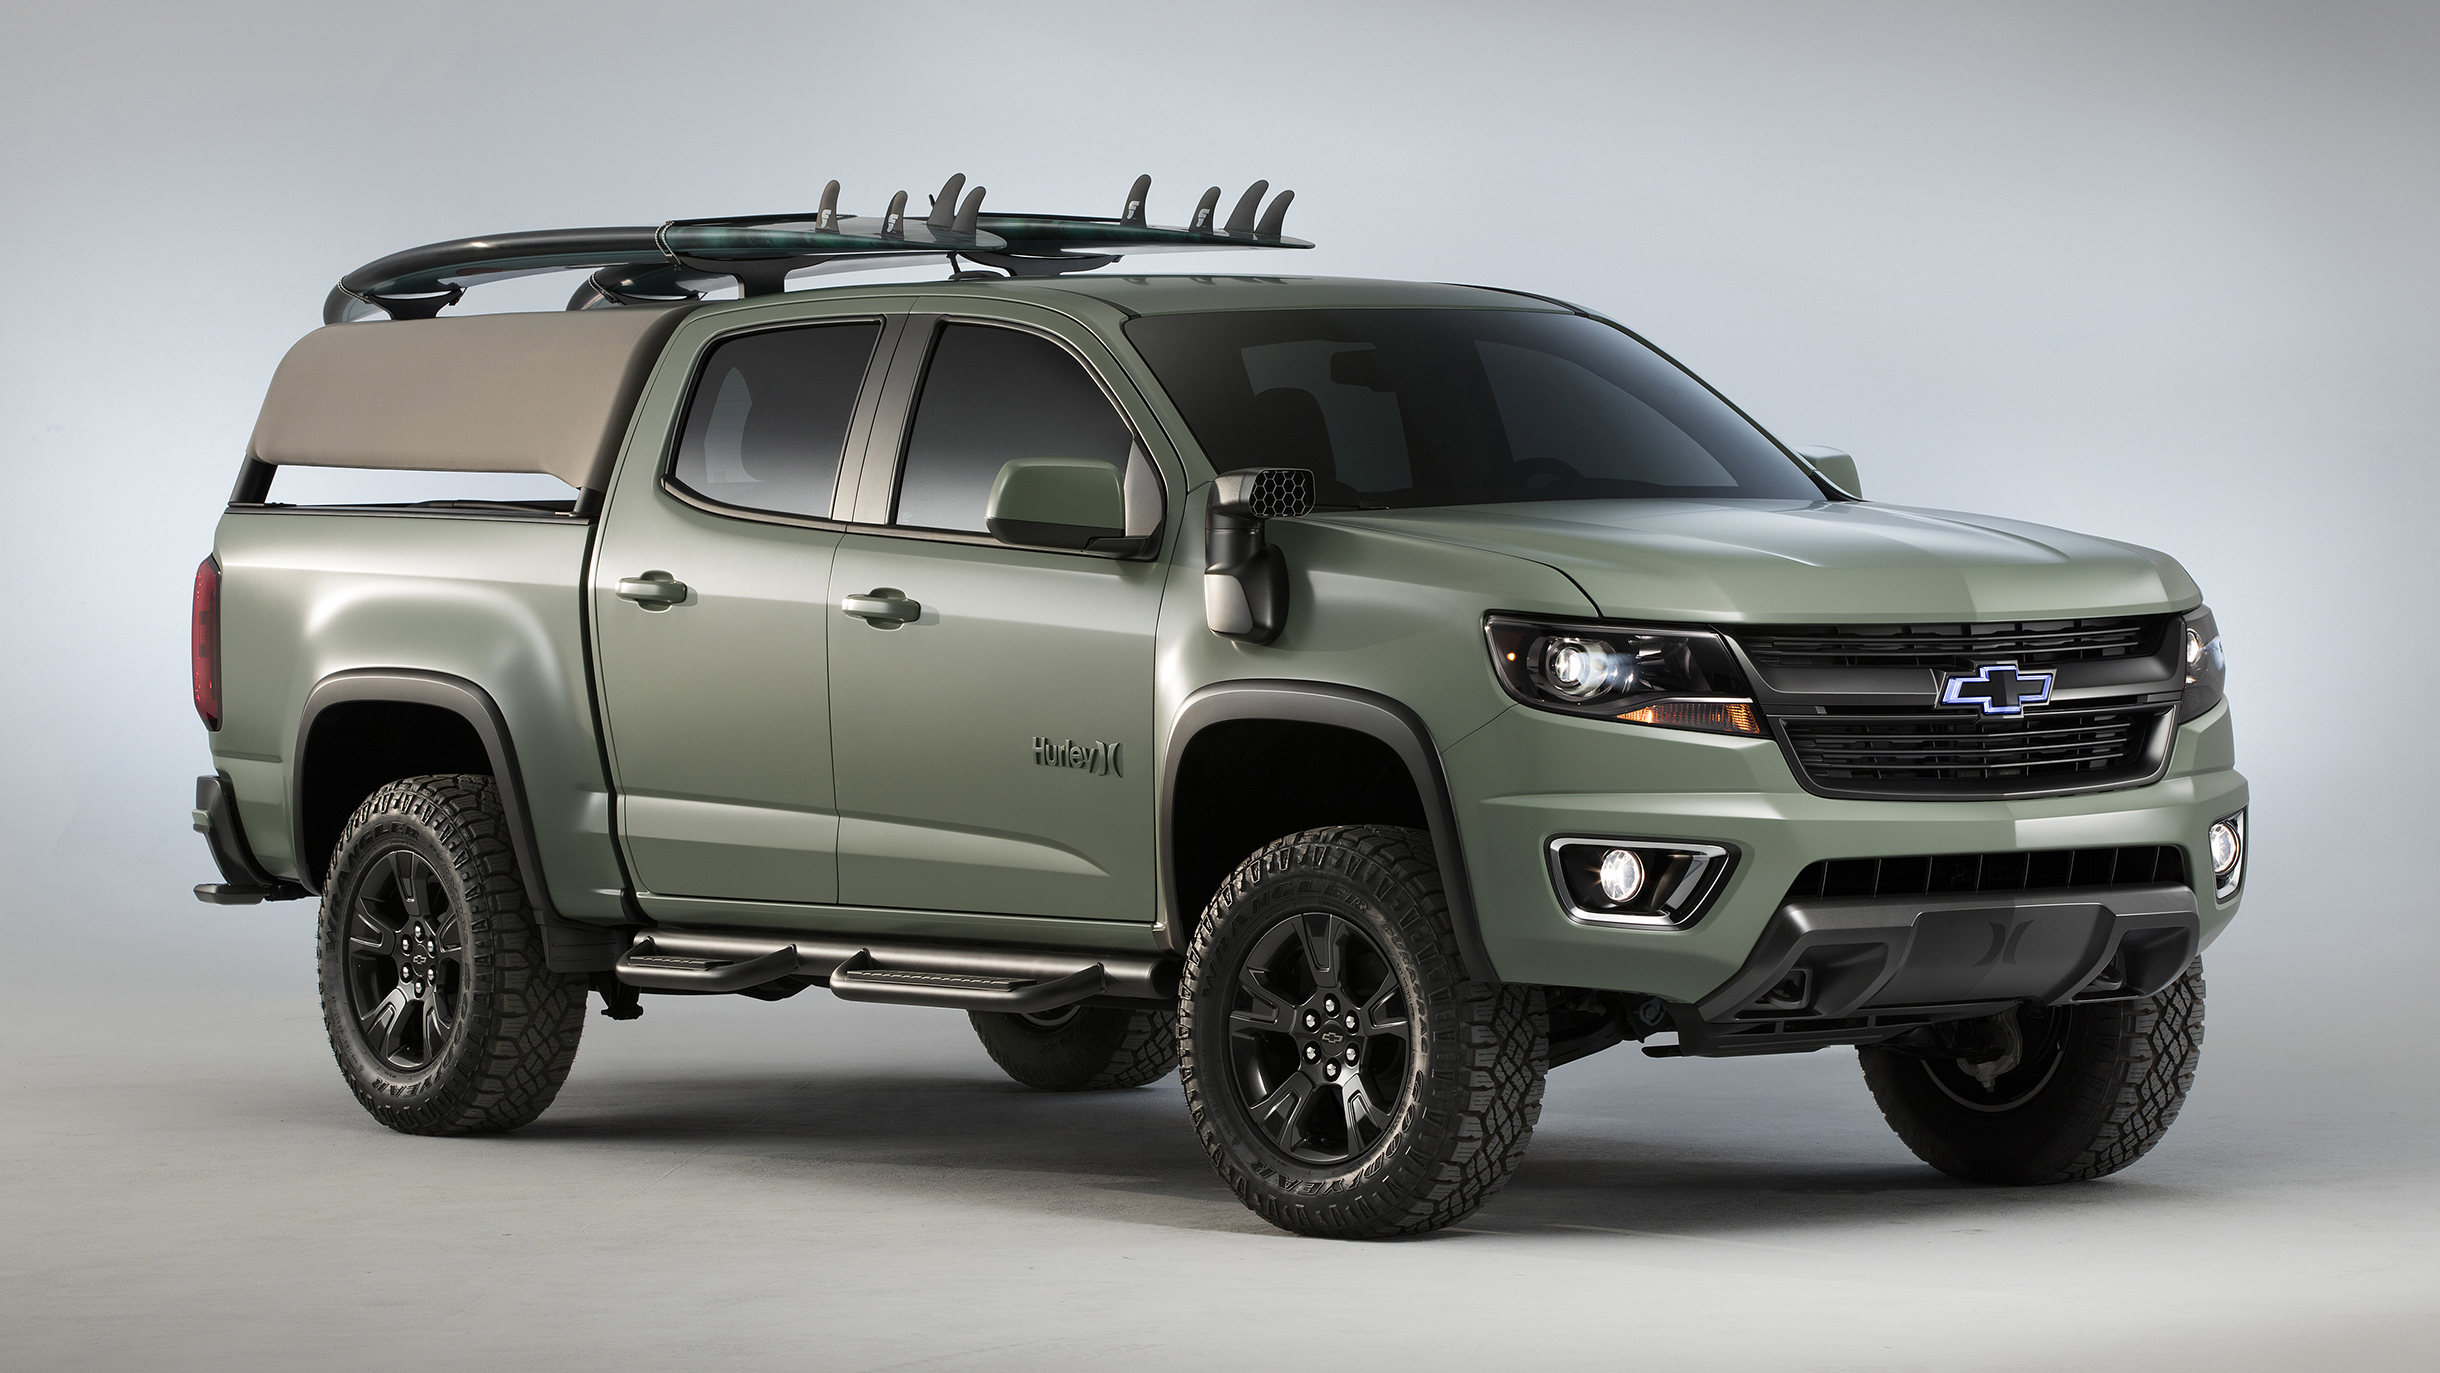 2017 Chevrolet Colorado Z71 Hurley Concept Photo Gallery Autoblog